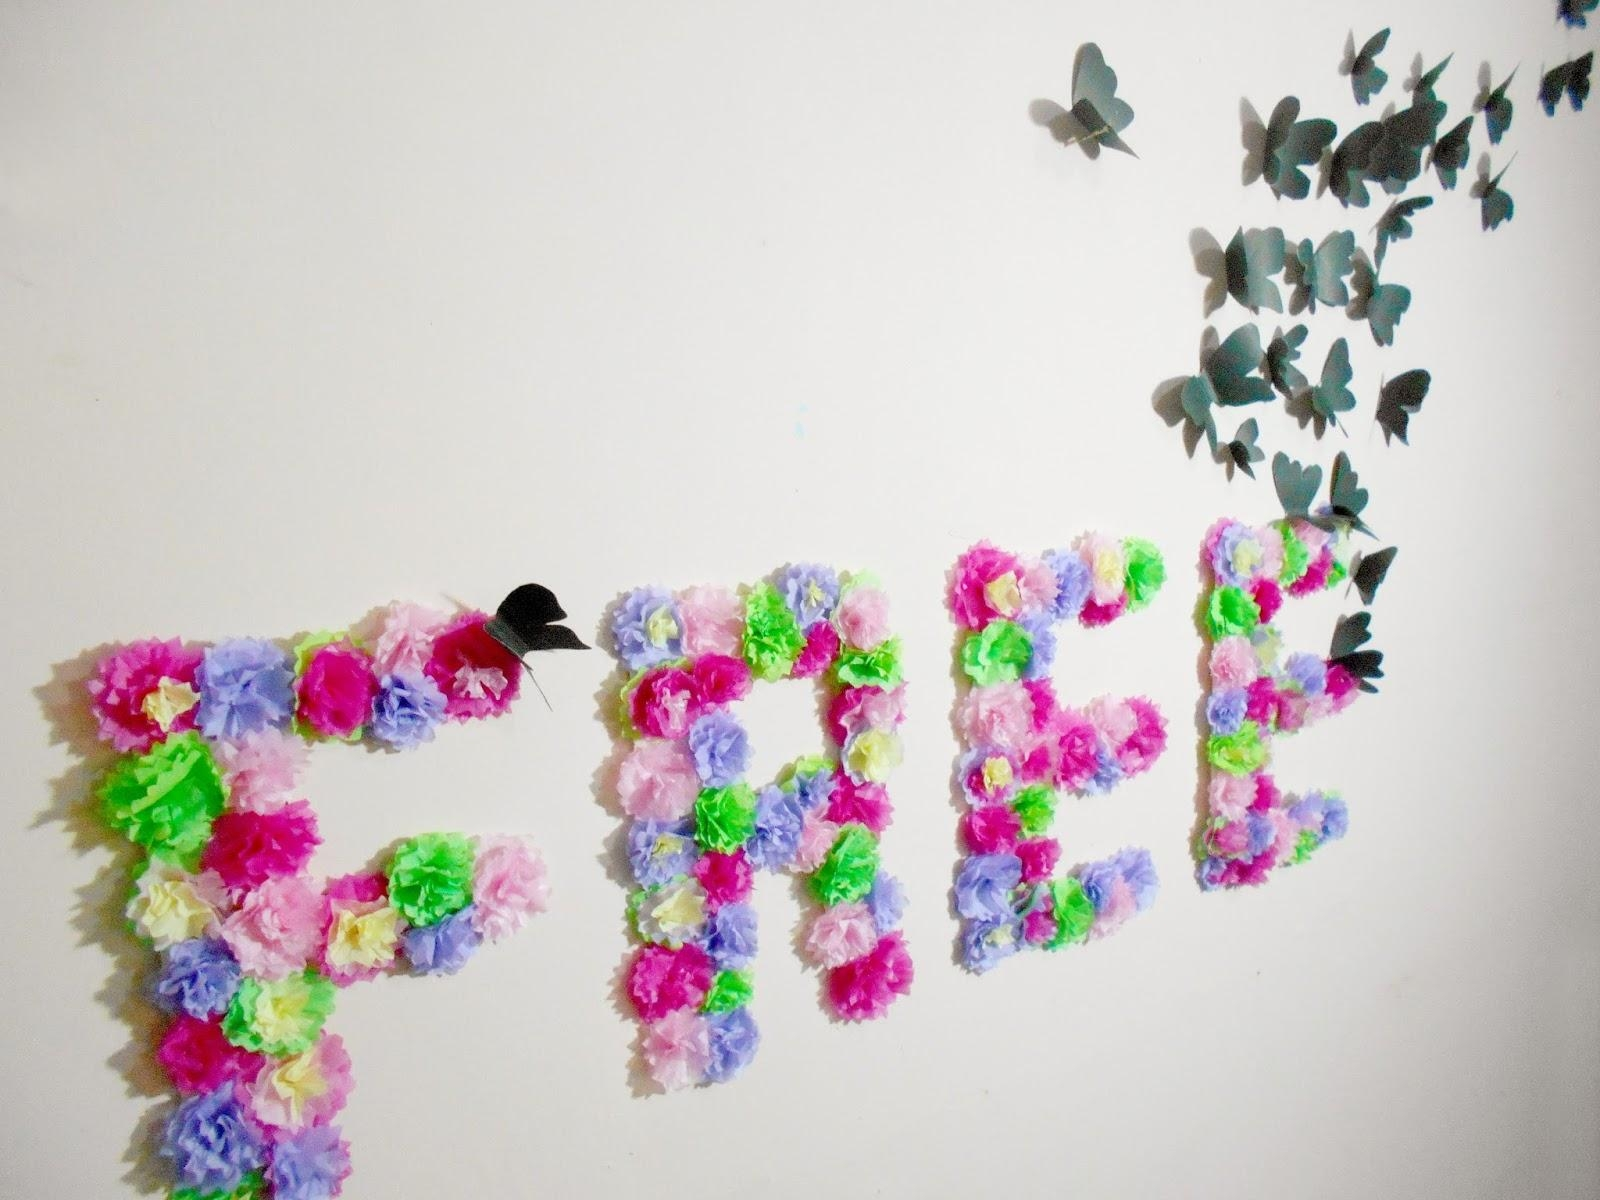 Diy Paper Flowers And Butterflies Wall Art | Room Decoration Idea Within Ceramic Butterfly Wall Art (Image 16 of 20)